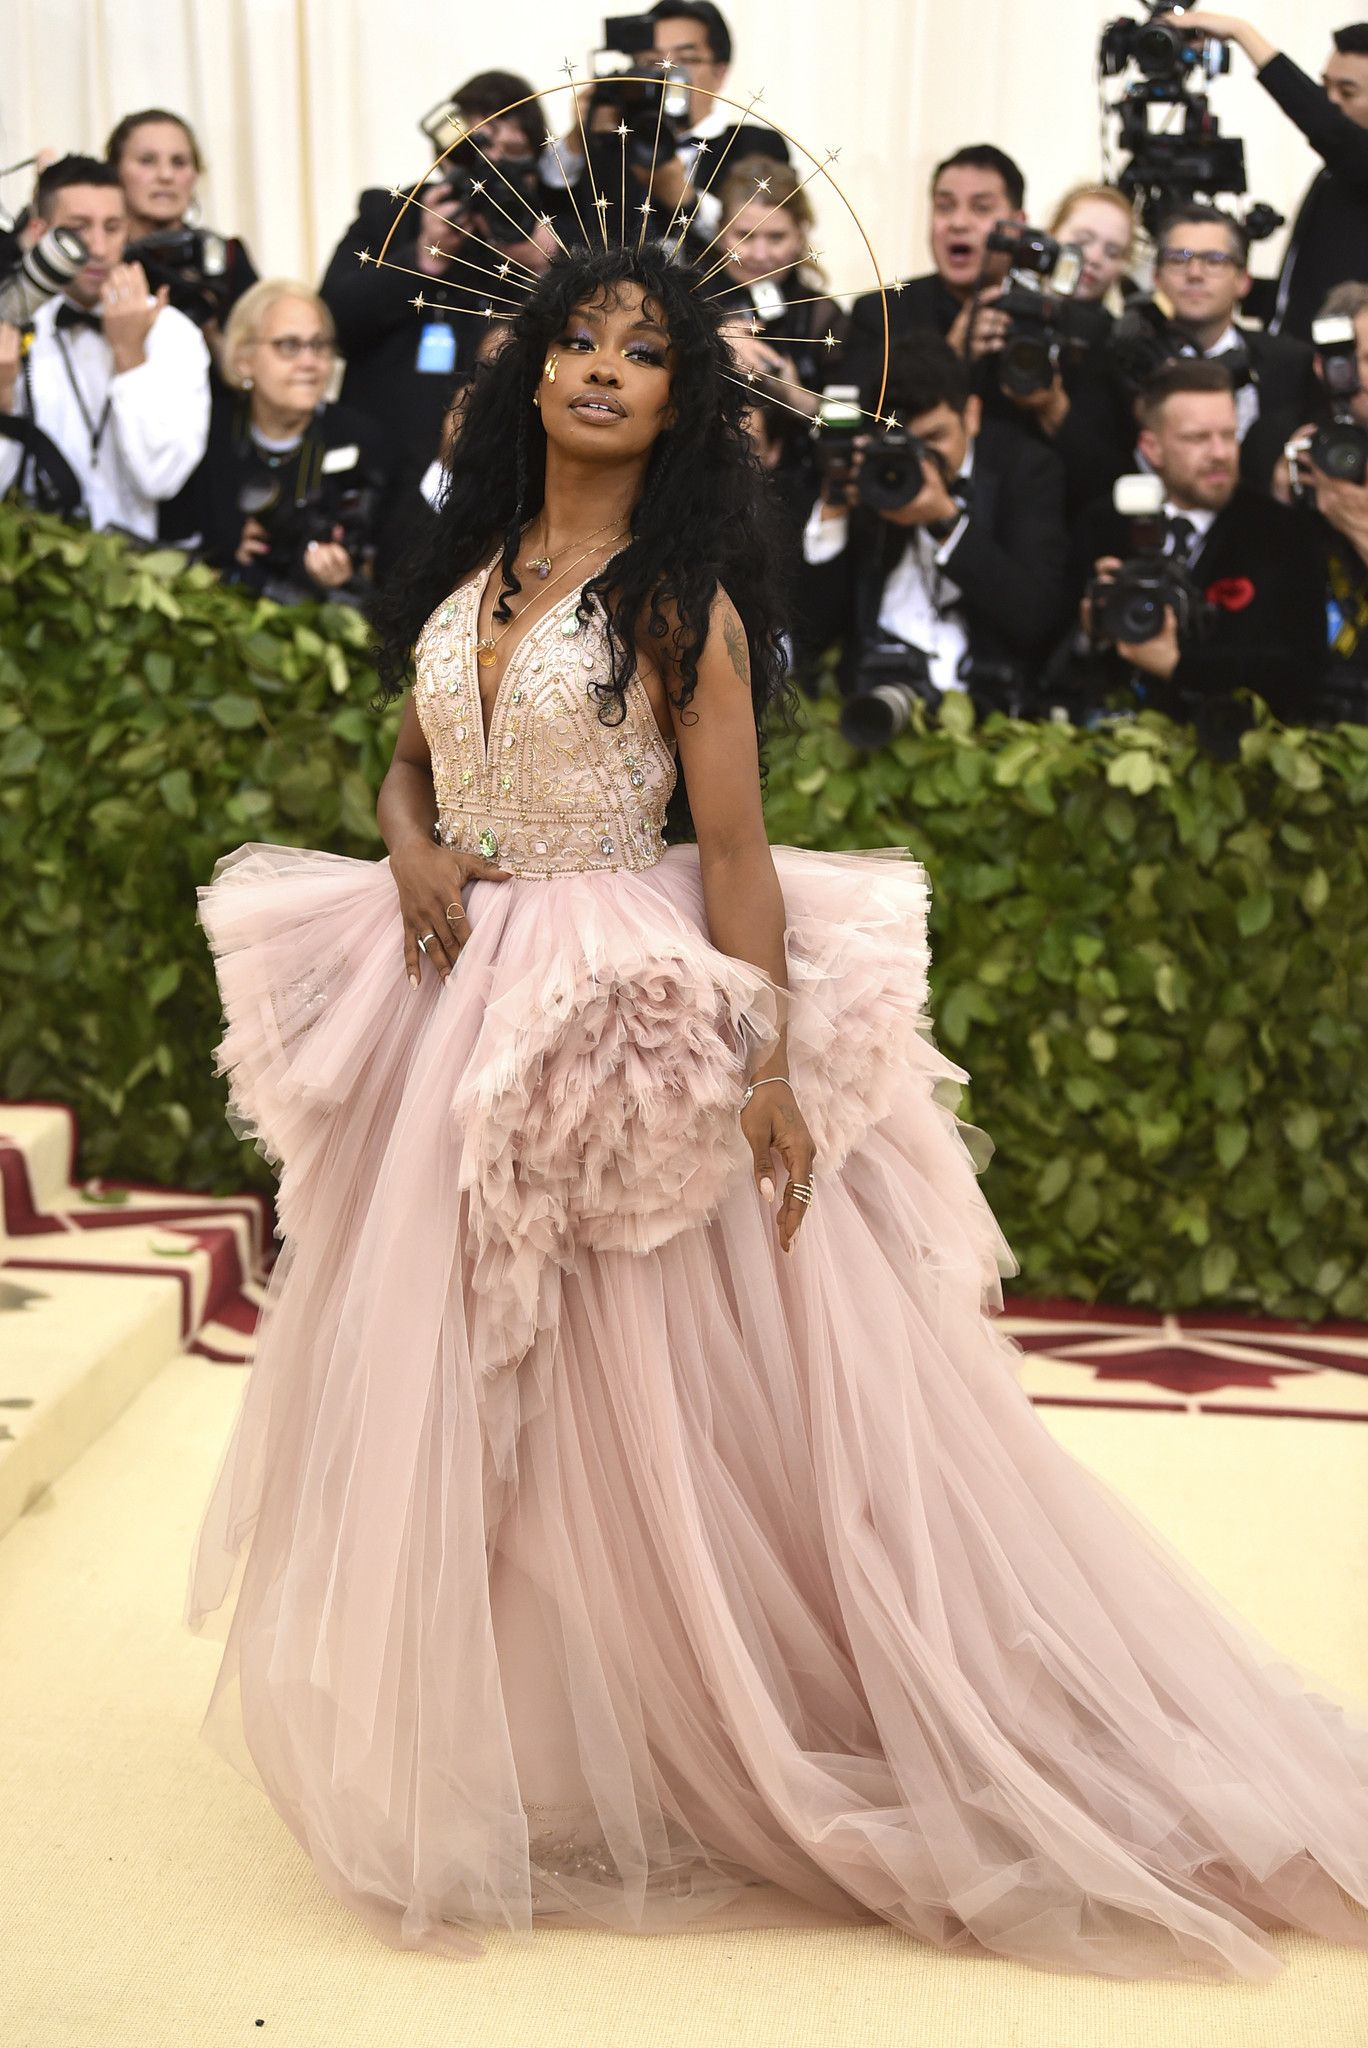 At the met gala stars show off their saintly side with classic